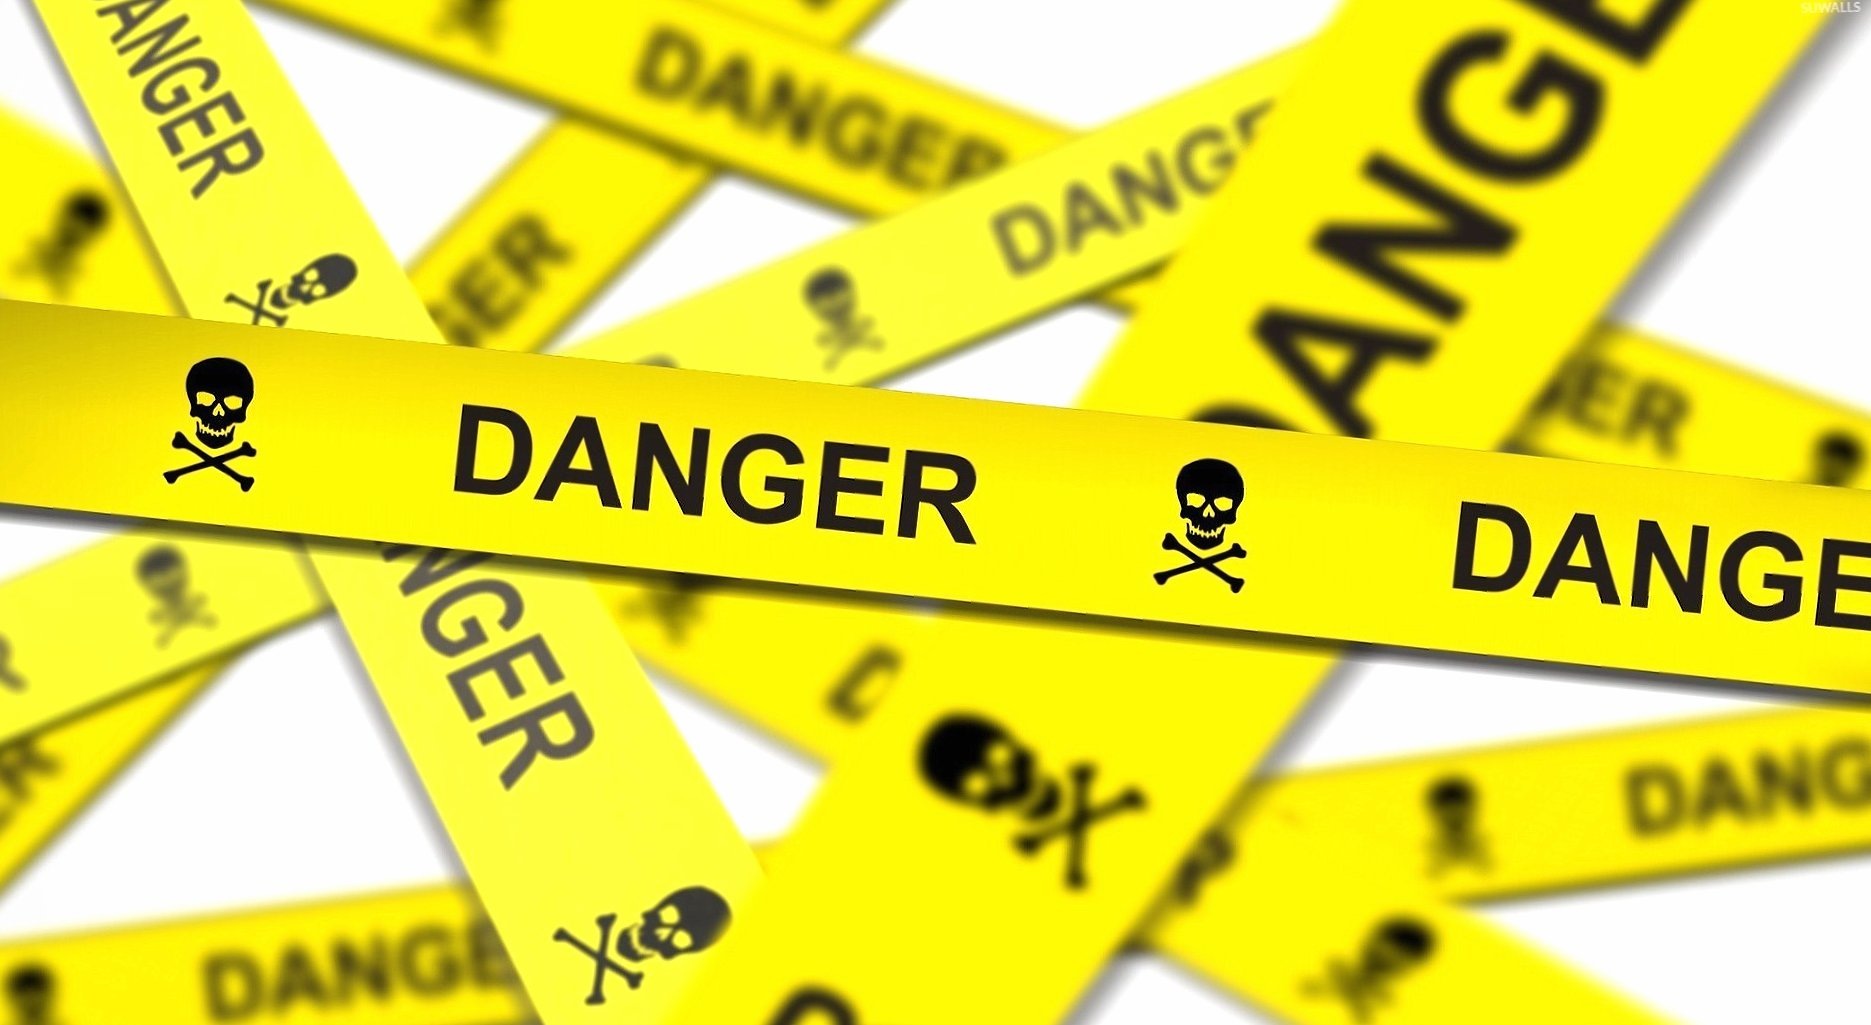 Danger tape wallpapers HD quality